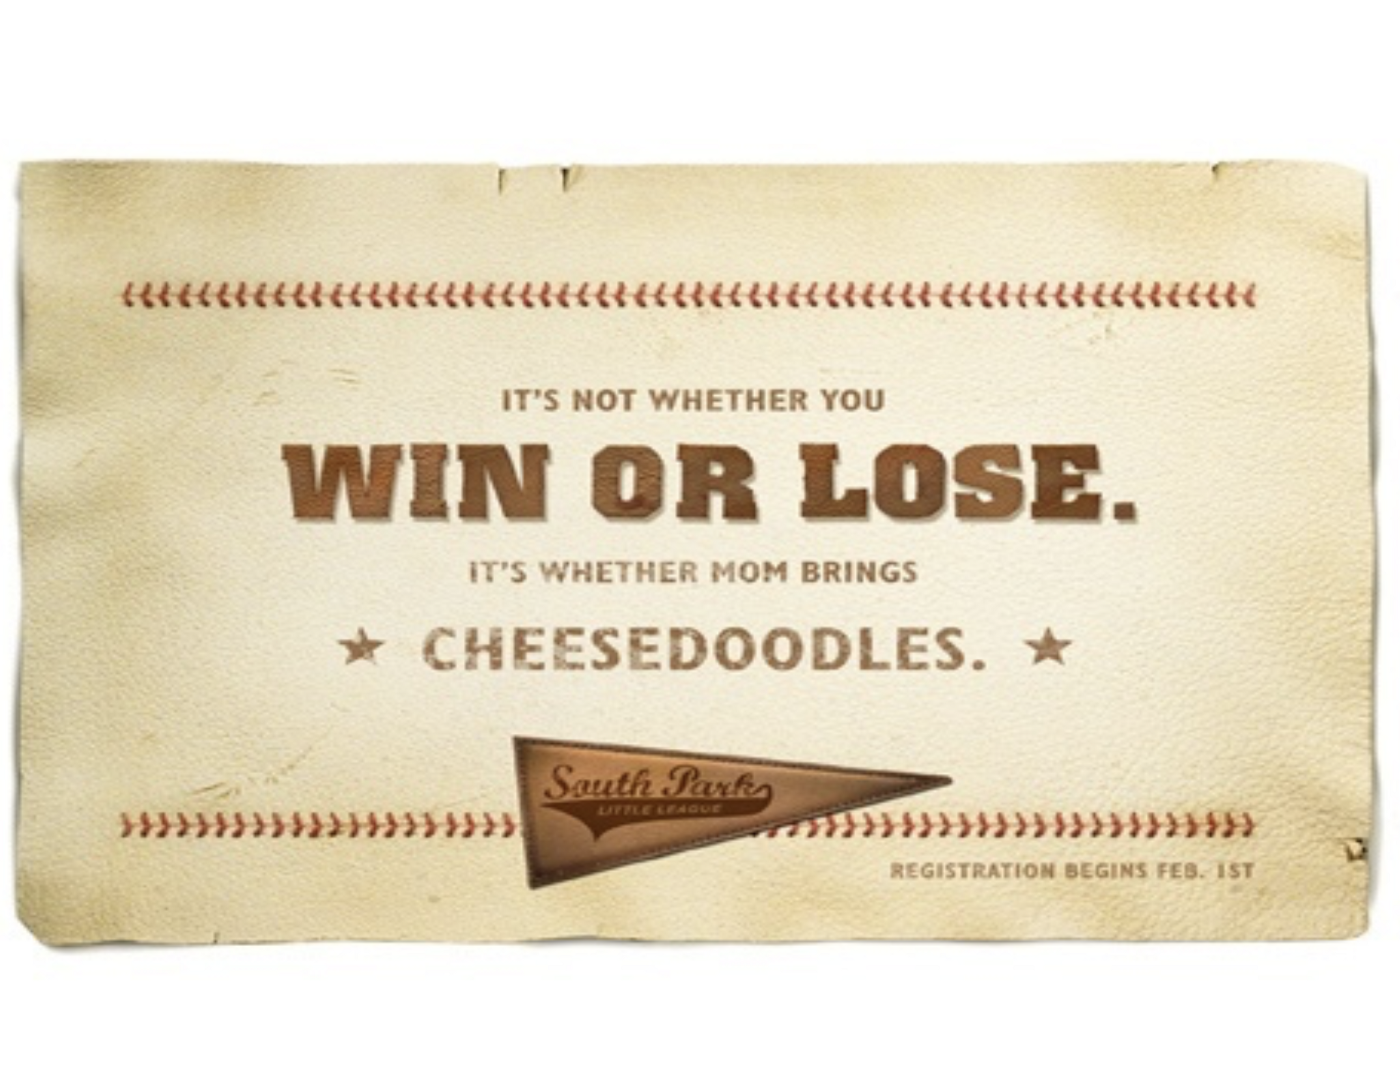 """An advertisement for little league that reads """"It's not whether you win or lose. it's whether mom brings cheesedoodles."""""""